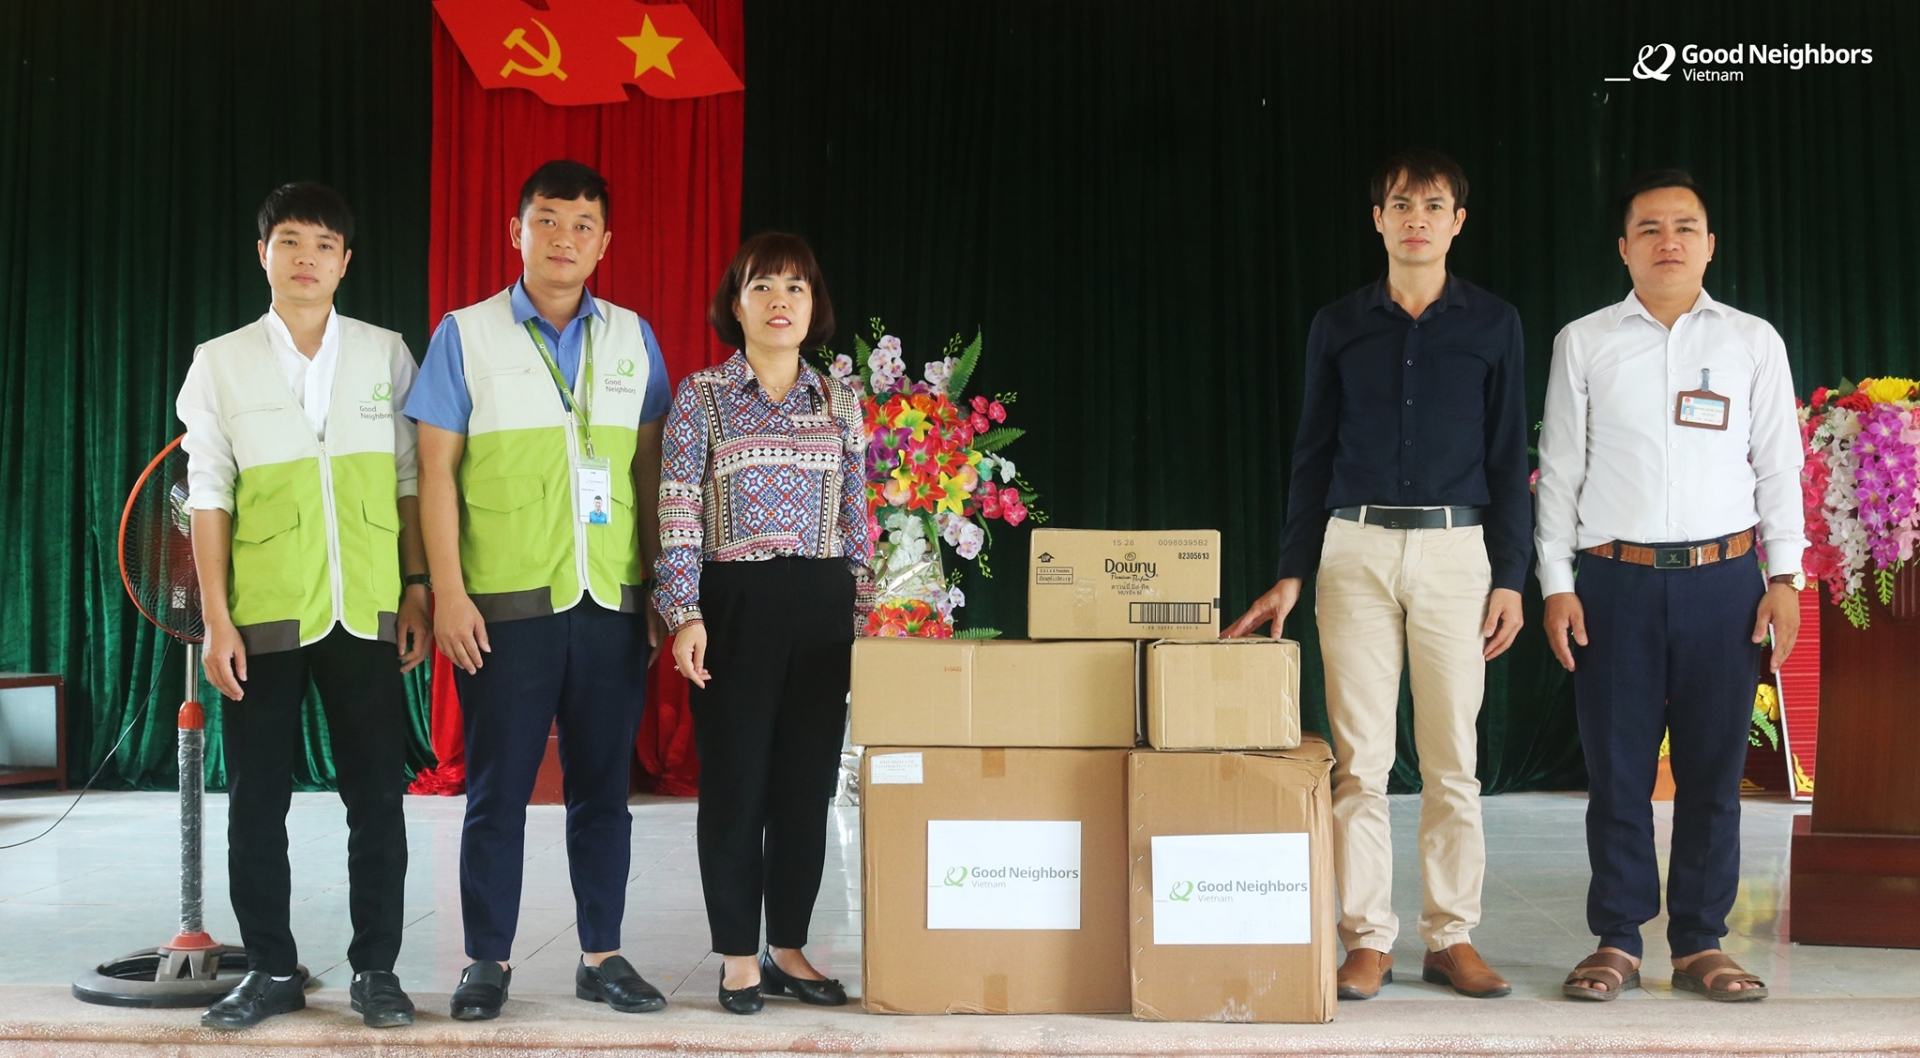 korean ngo support covid 19 response in province bordering china